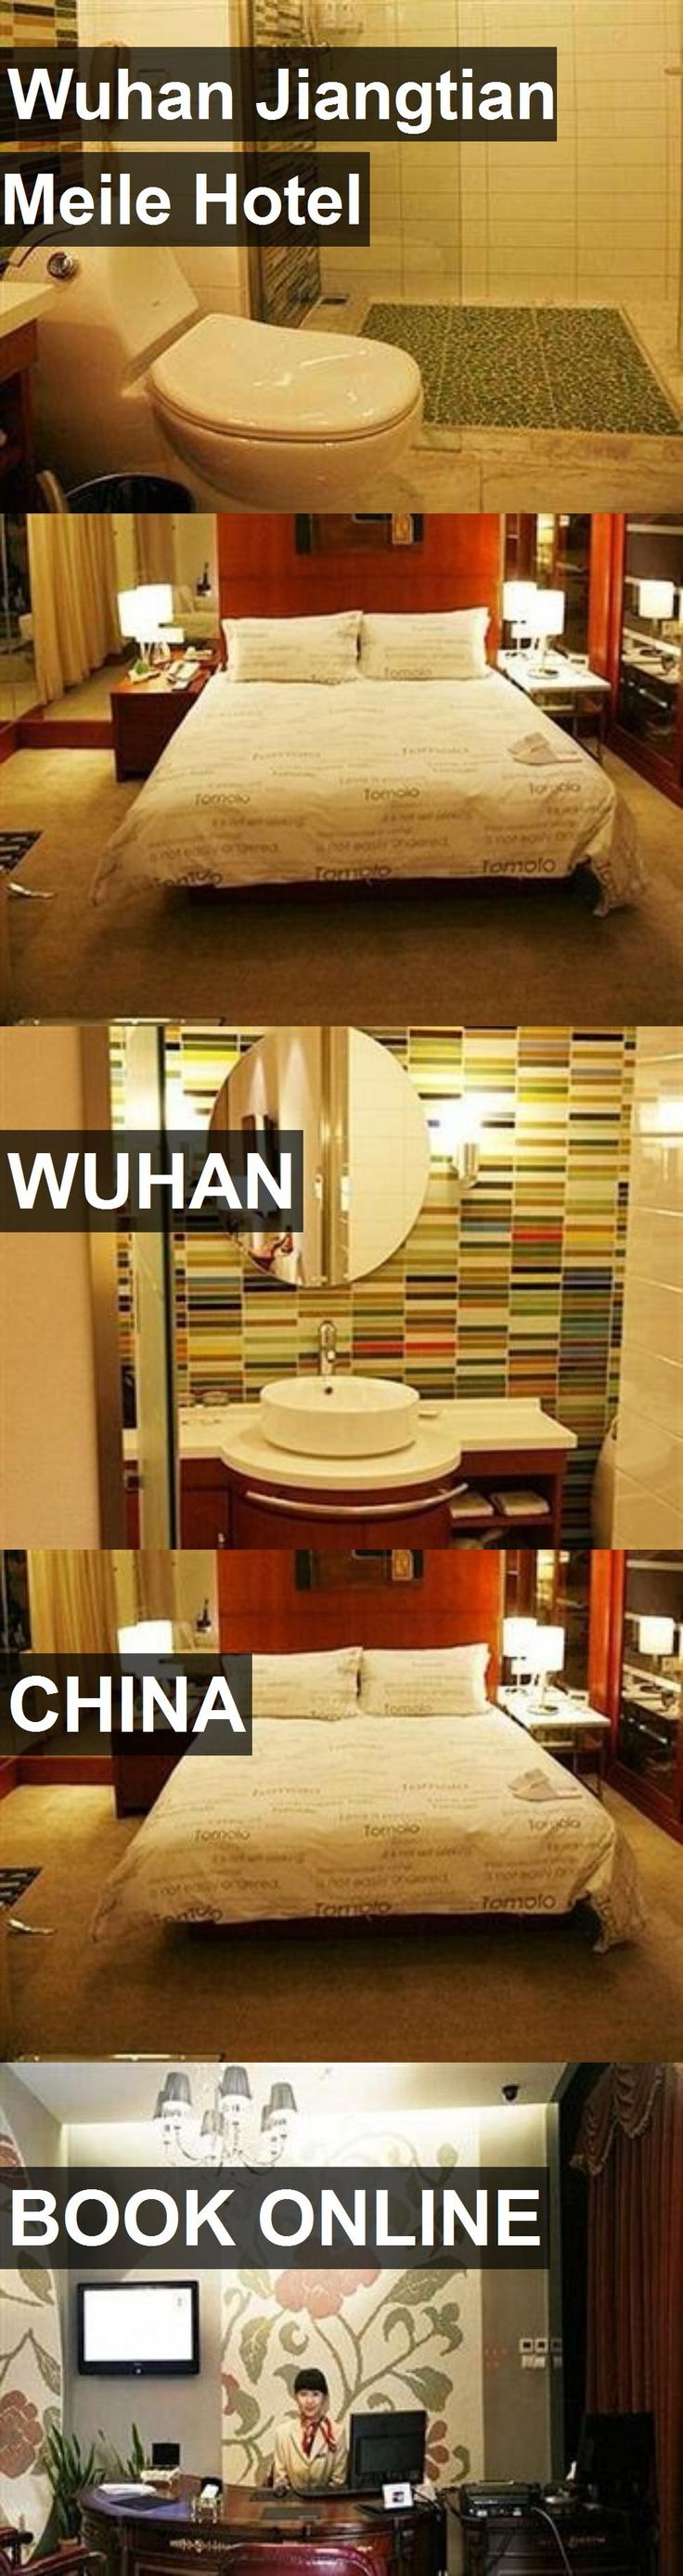 Hotel Wuhan Jiangtian Meile Hotel in Wuhan, China. For more information, photos, reviews and best prices please follow the link. #China #Wuhan #WuhanJiangtianMeileHotel #hotel #travel #vacation